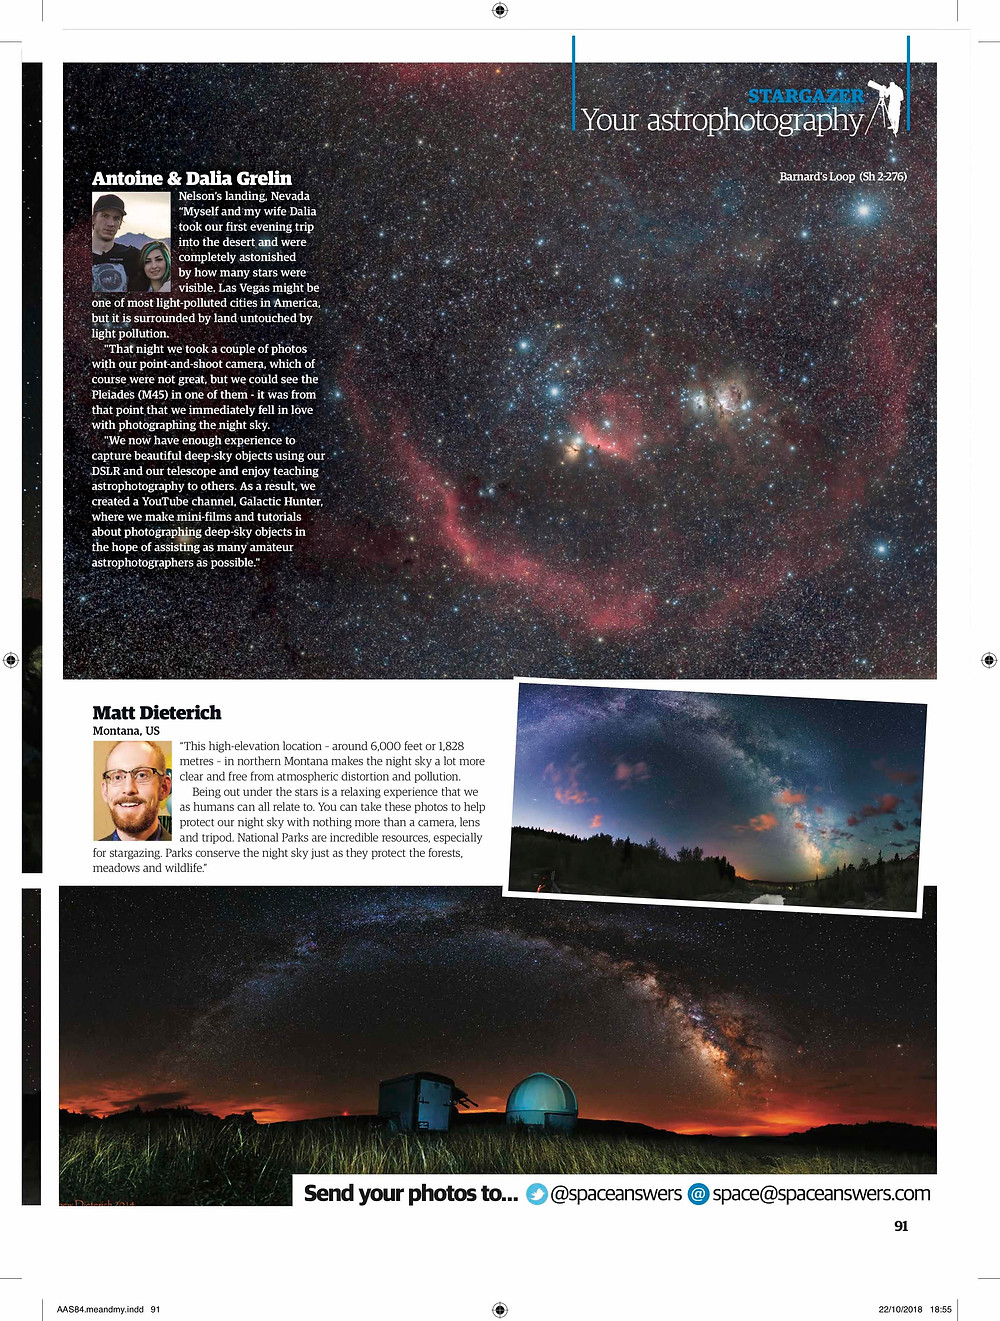 Galactic Hunter Barnard's Loop featured on All About Space Magazine, Astrophotography with an unmodified DSLR camera